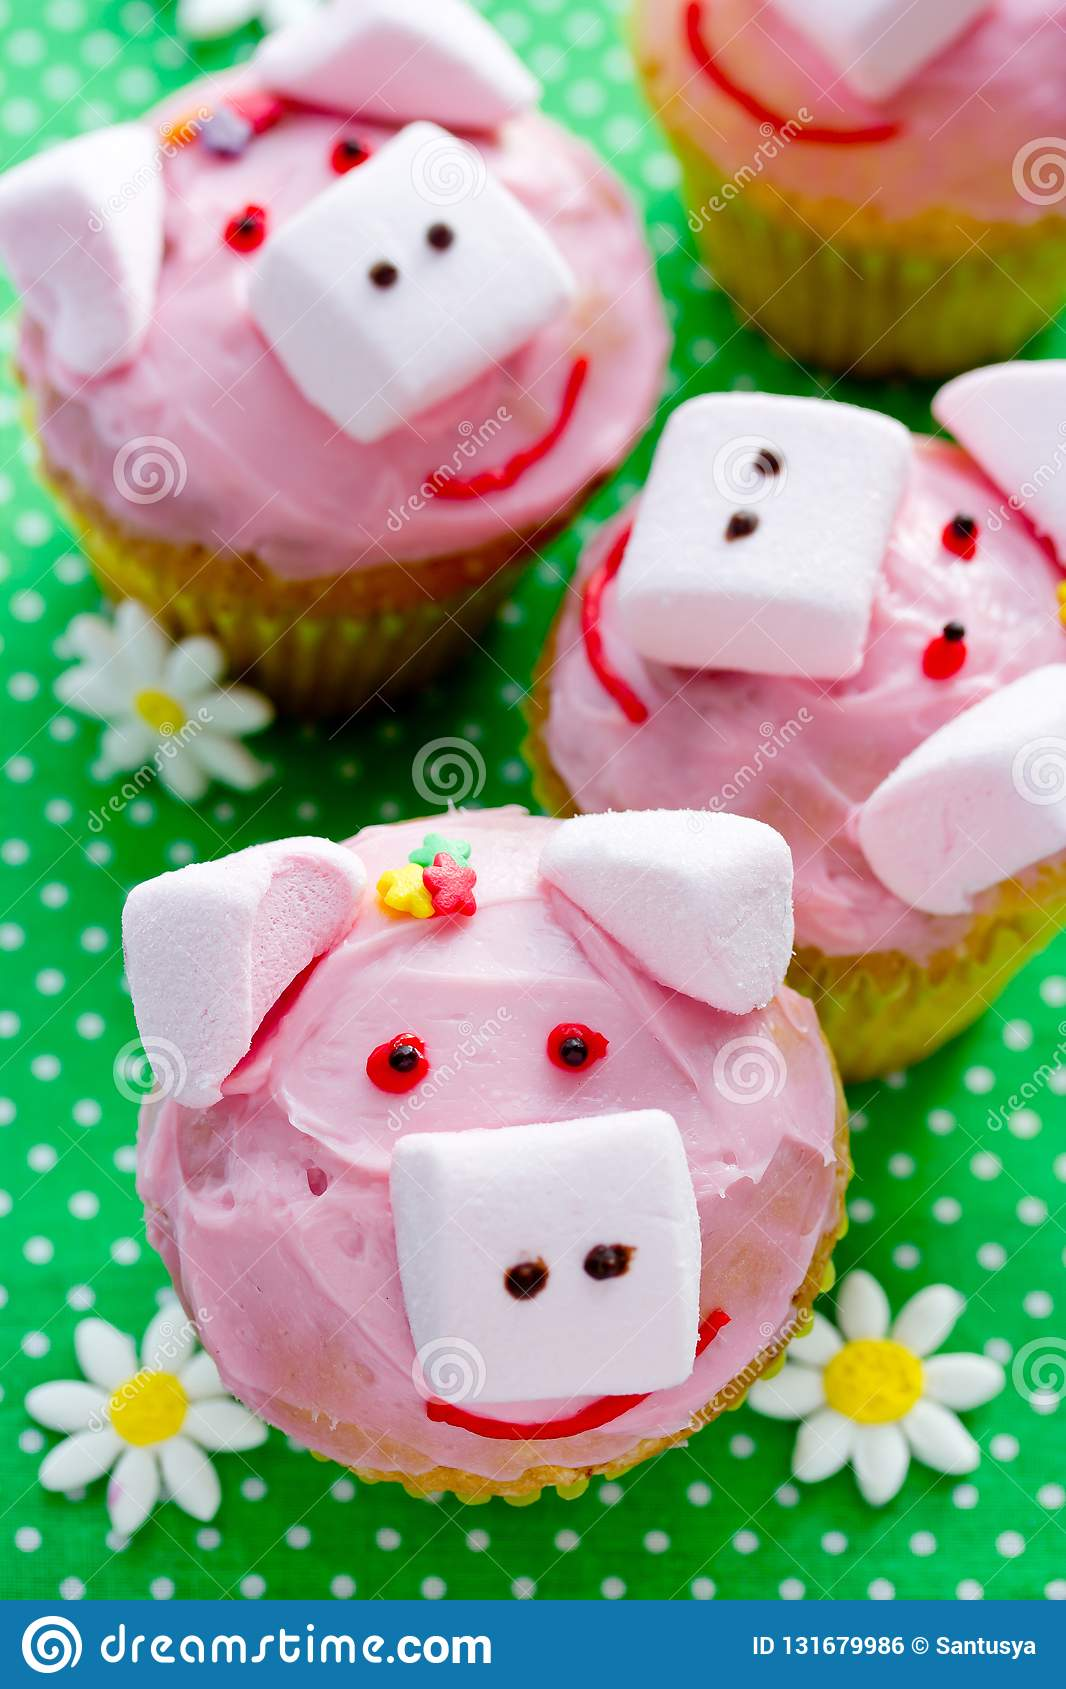 Stupendous Pig Cupcakes Animal Shaped Funny Cakes For Kids Stock Photo Personalised Birthday Cards Sponlily Jamesorg